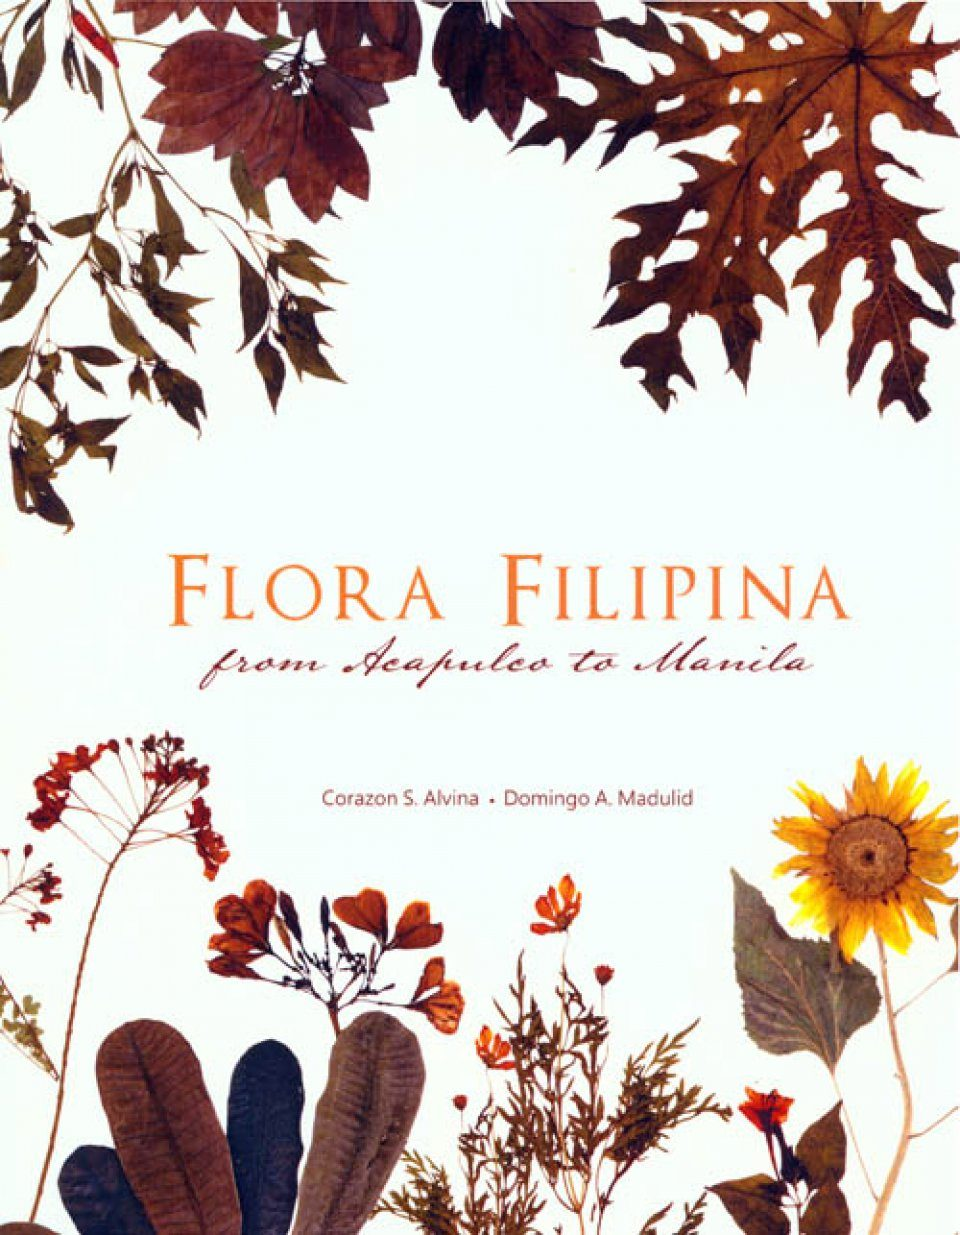 Flora Filipina: From Acapulco to Manila